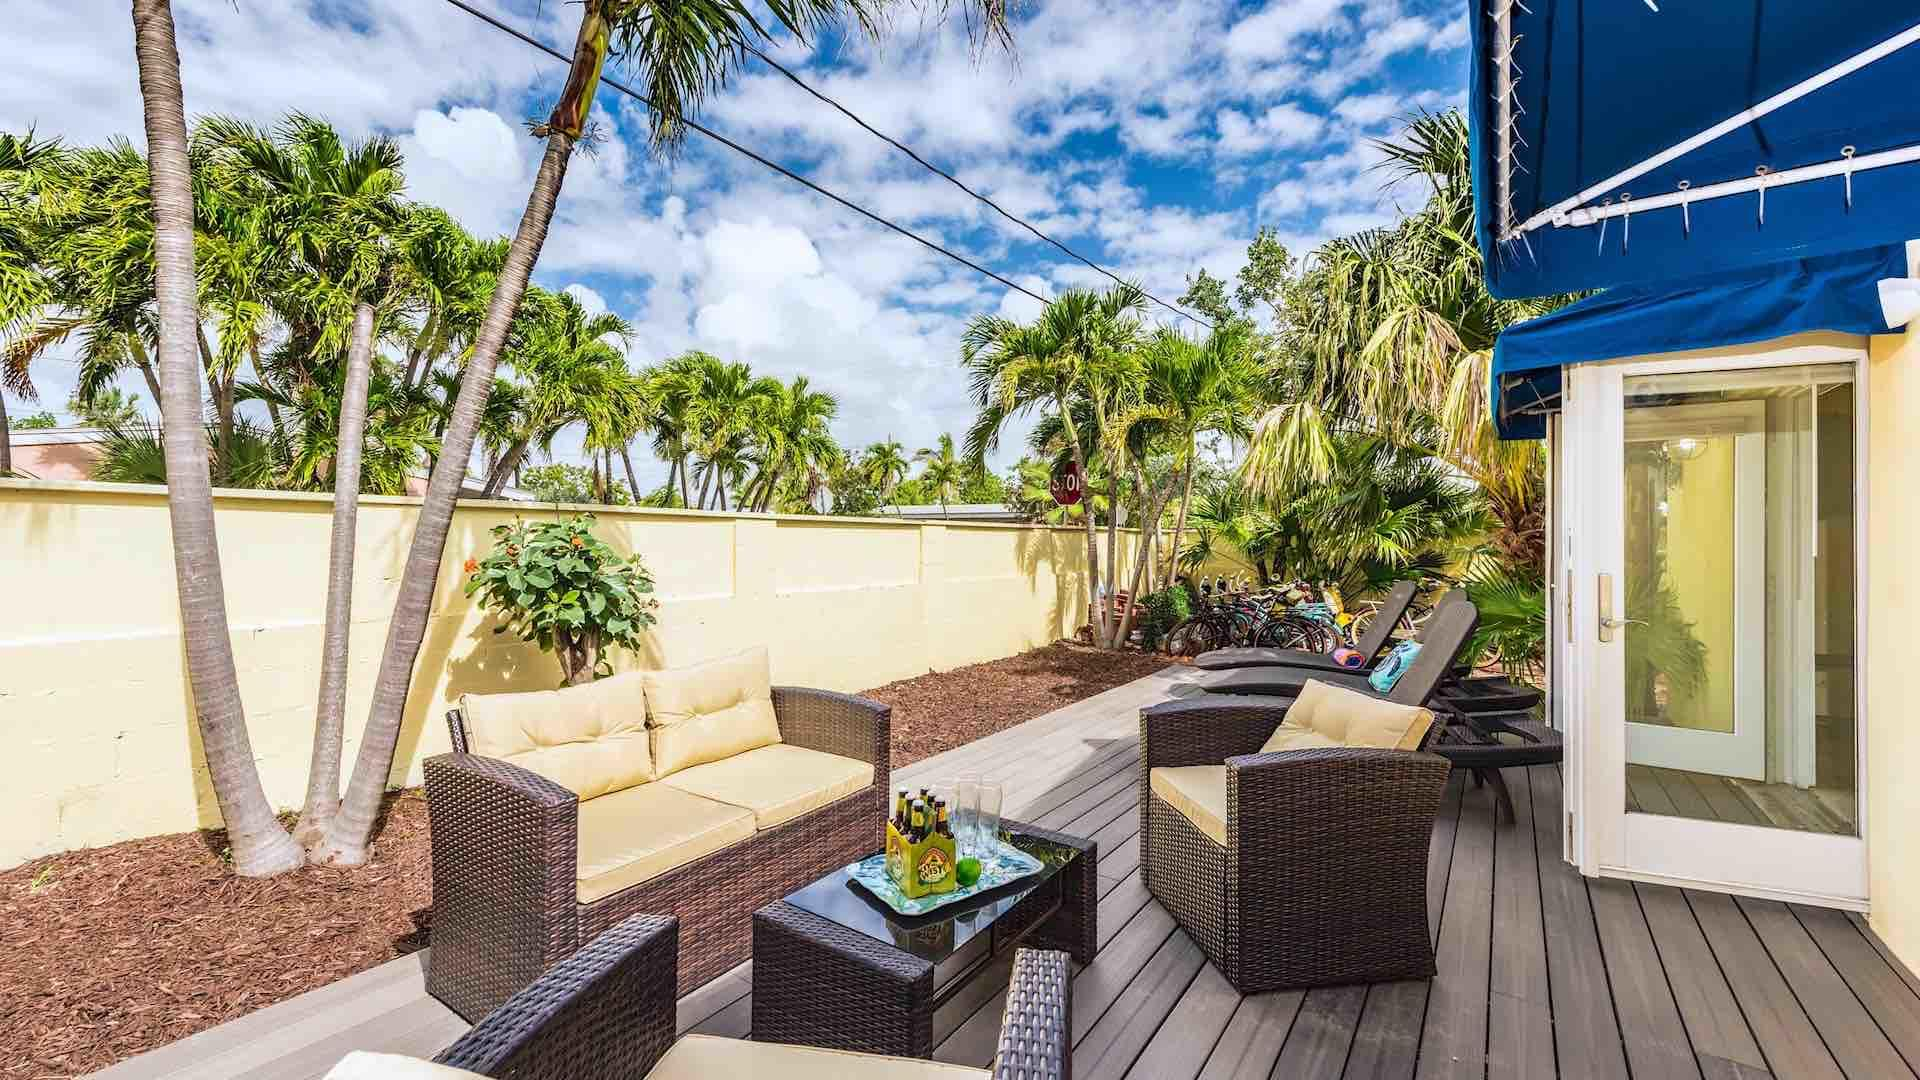 Enjoy your morning coffee on the sun deck...